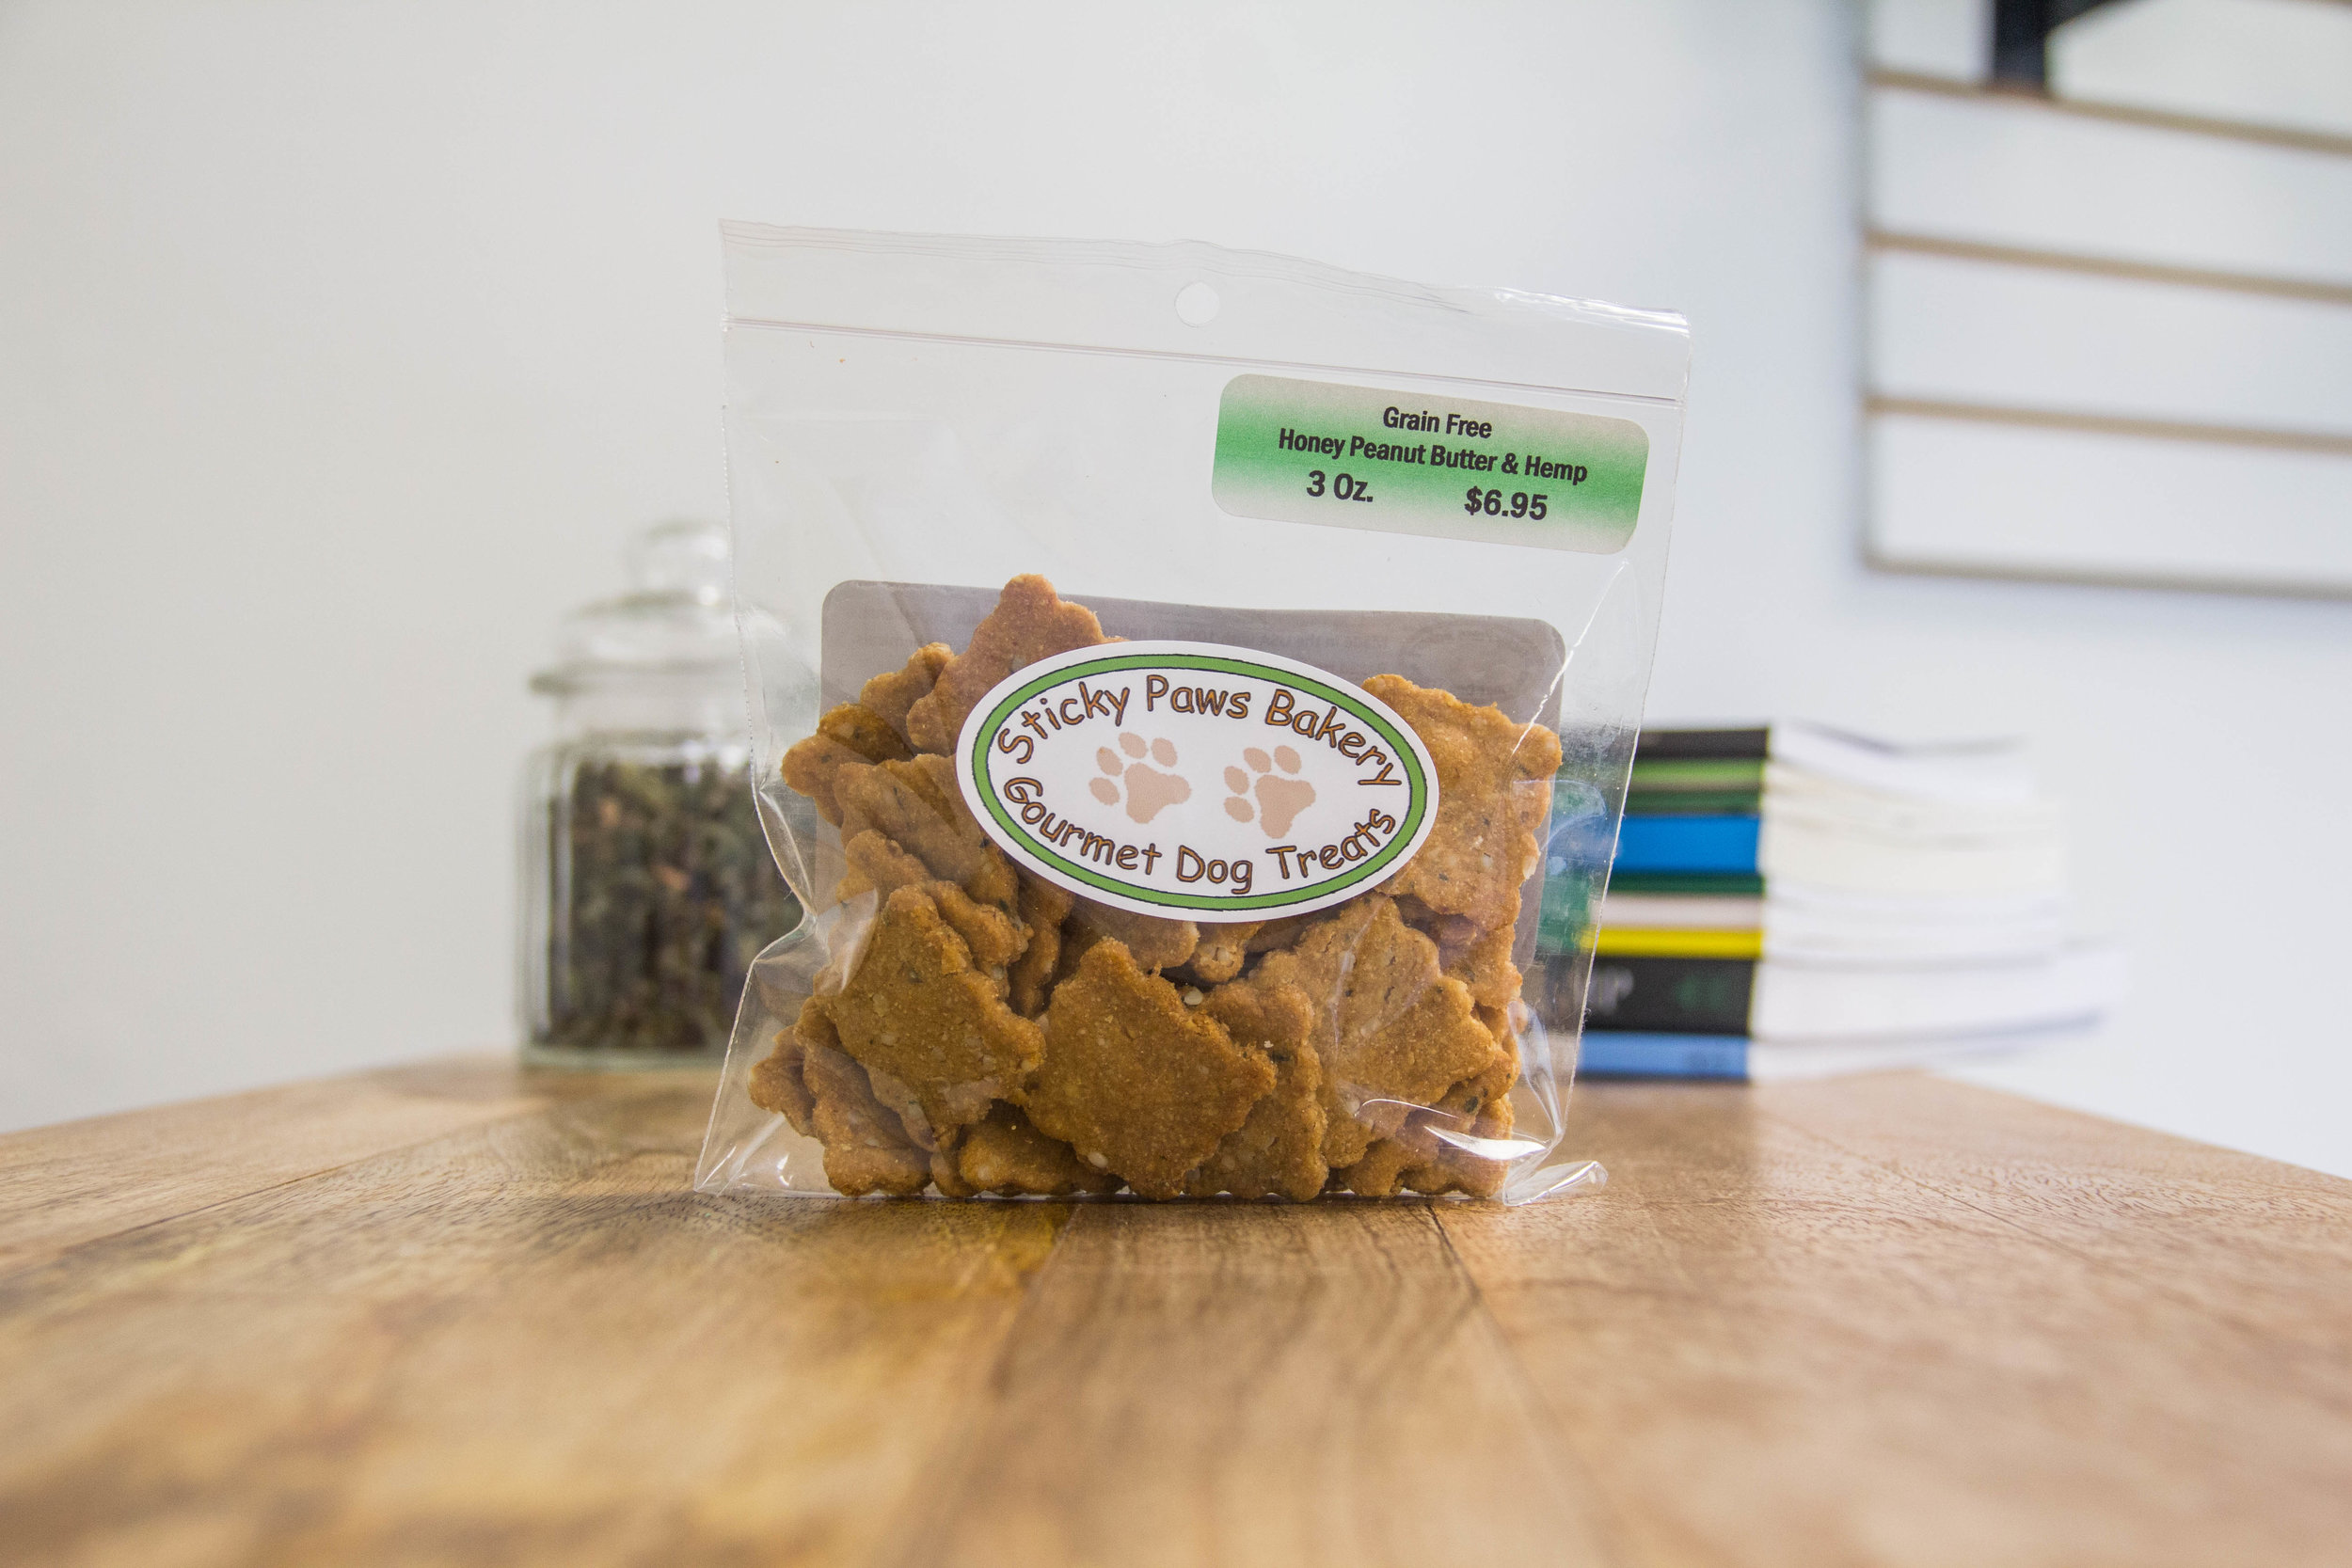 Sticky Paws Bakery - honey peanut butter and  hemp